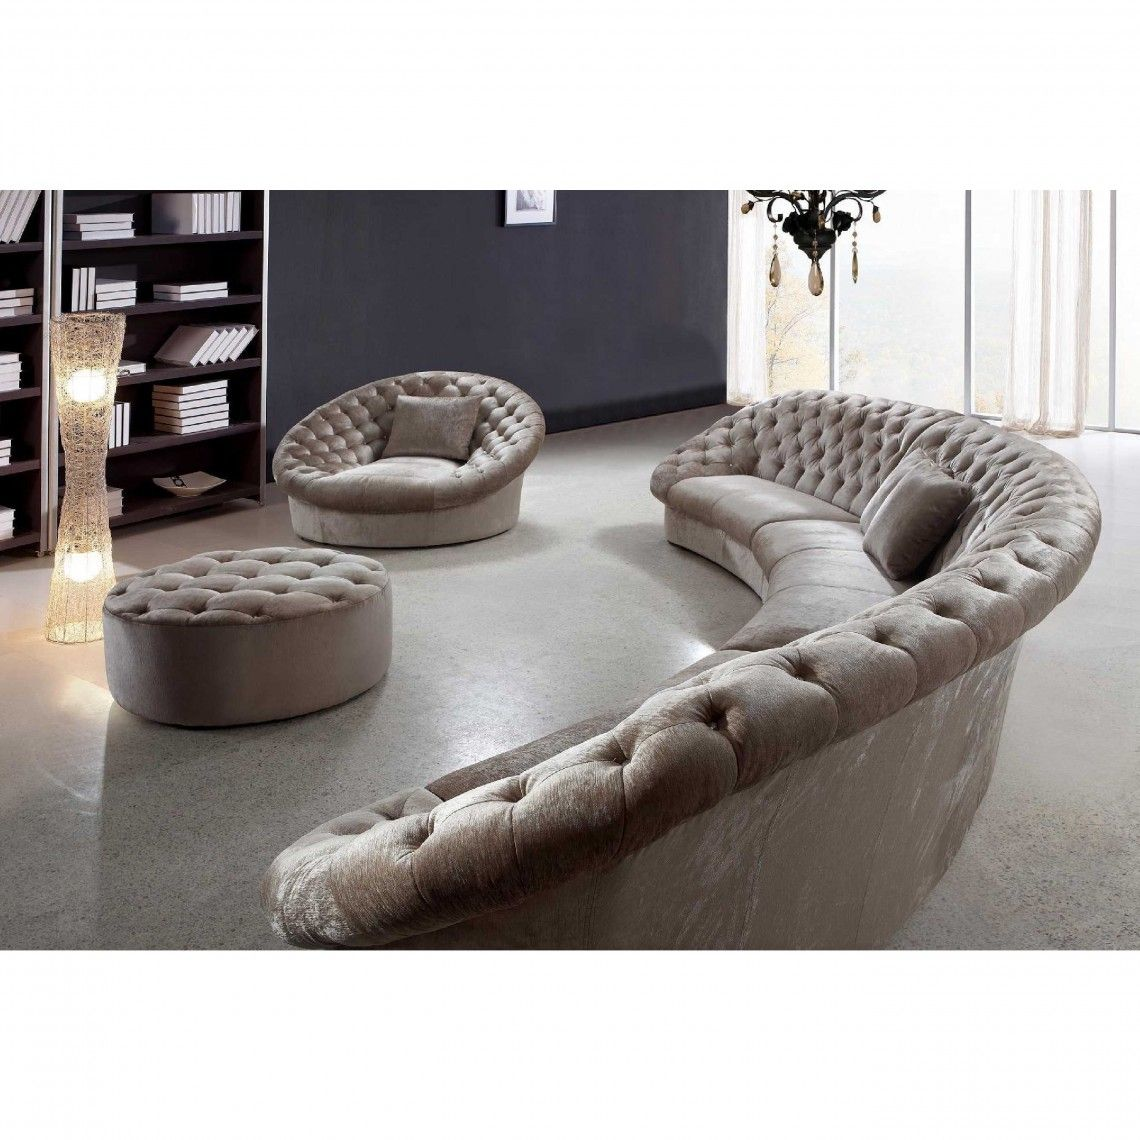 Cozy Curved Sectional Sofa Small Round Sectional Leather Sofas Circular Sofa Bed Curved Couches Store Curved Fabric Sectional Sofas Curved Sofa Sectional Sofa